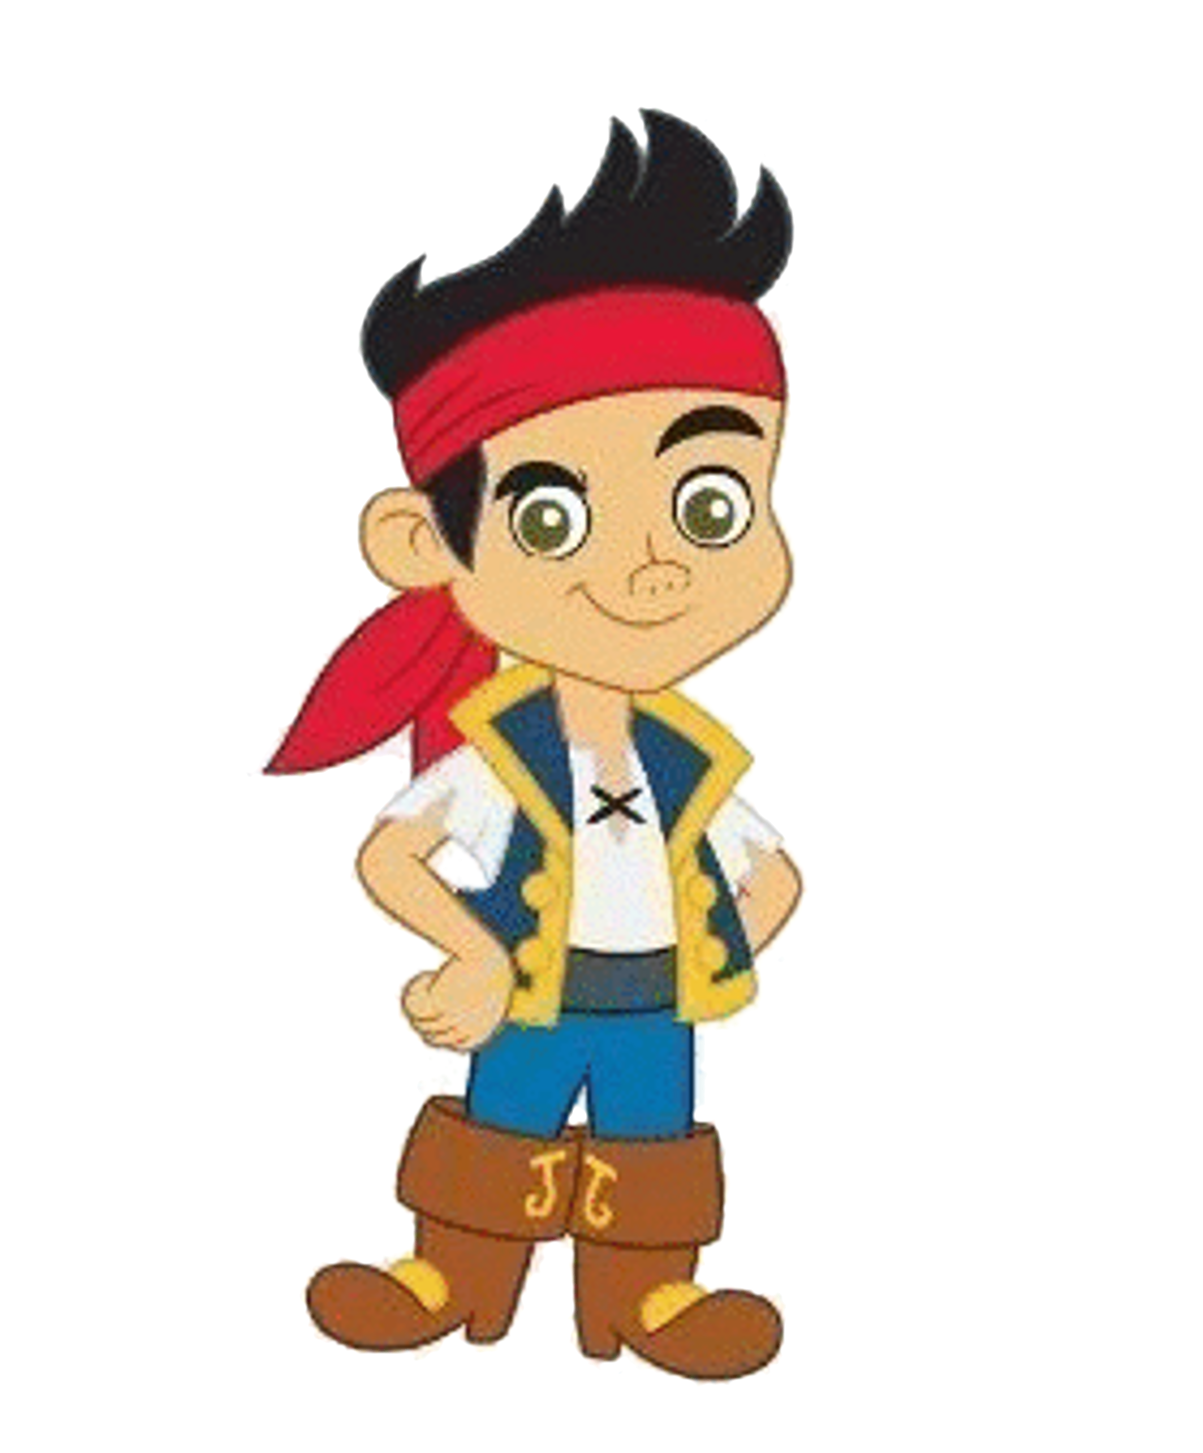 Jake and the neverland pirates characters clipart